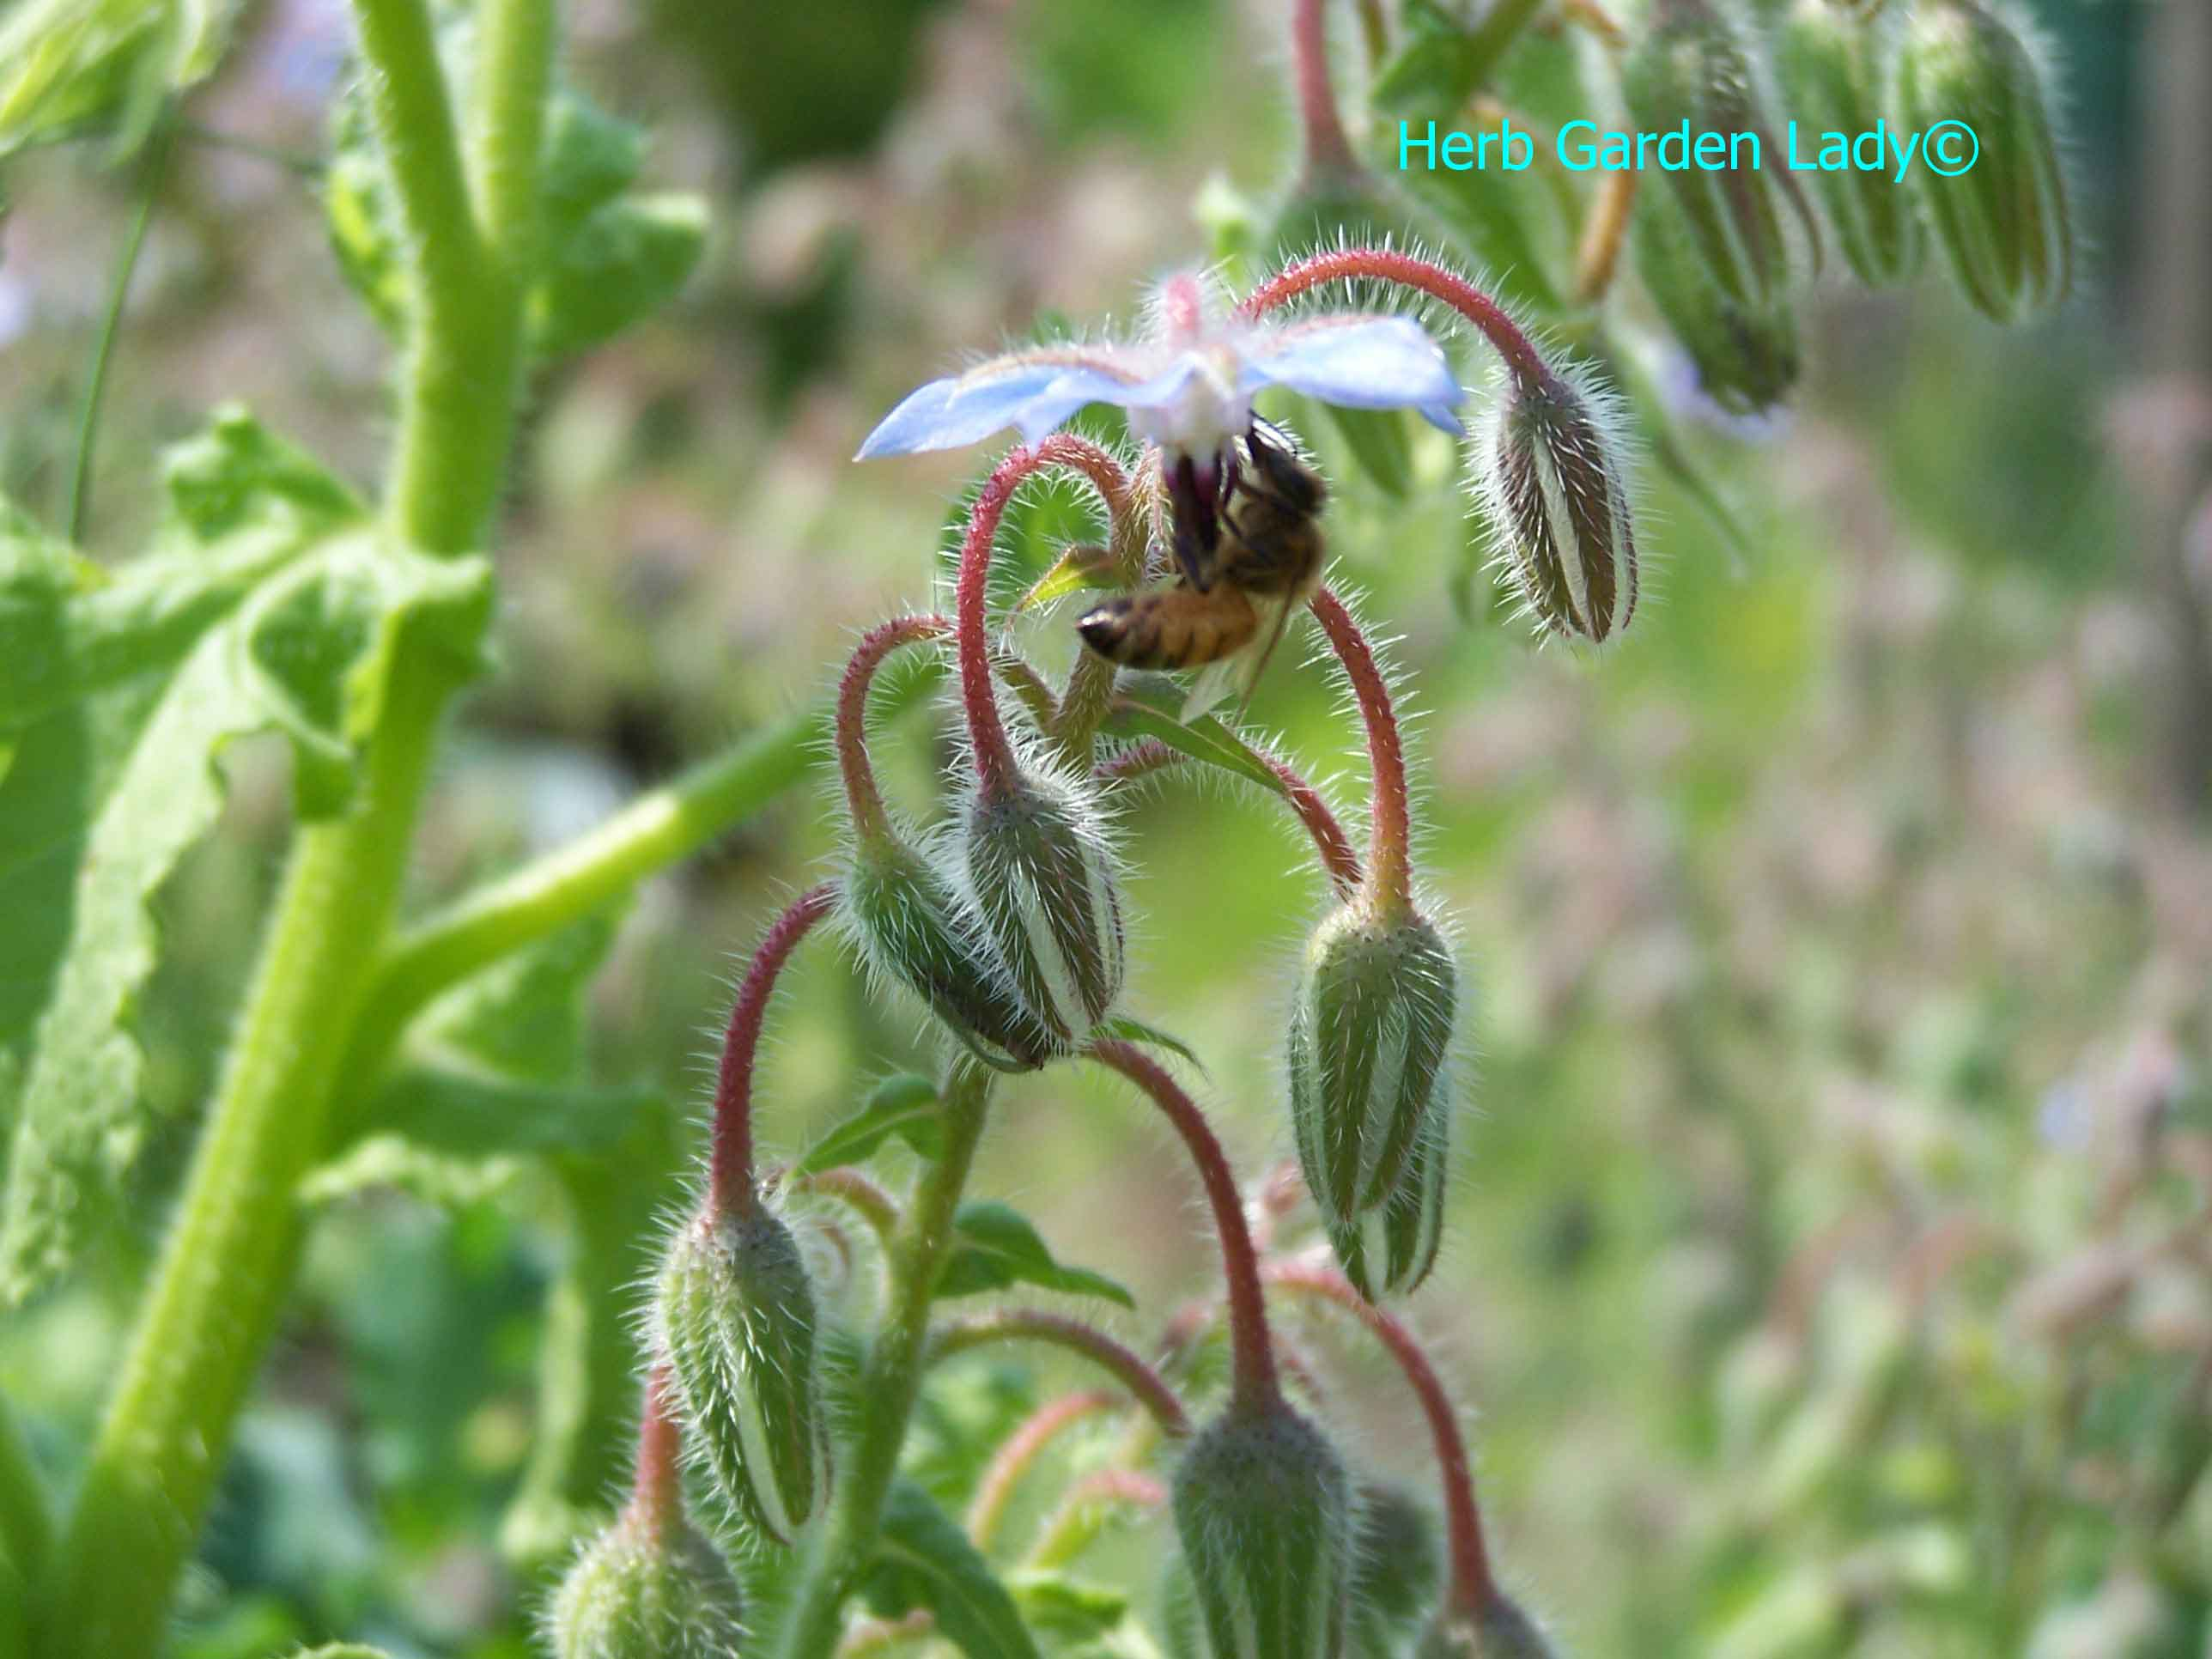 This honey bee is collecting nectar on borage herb and is a good pollinator.